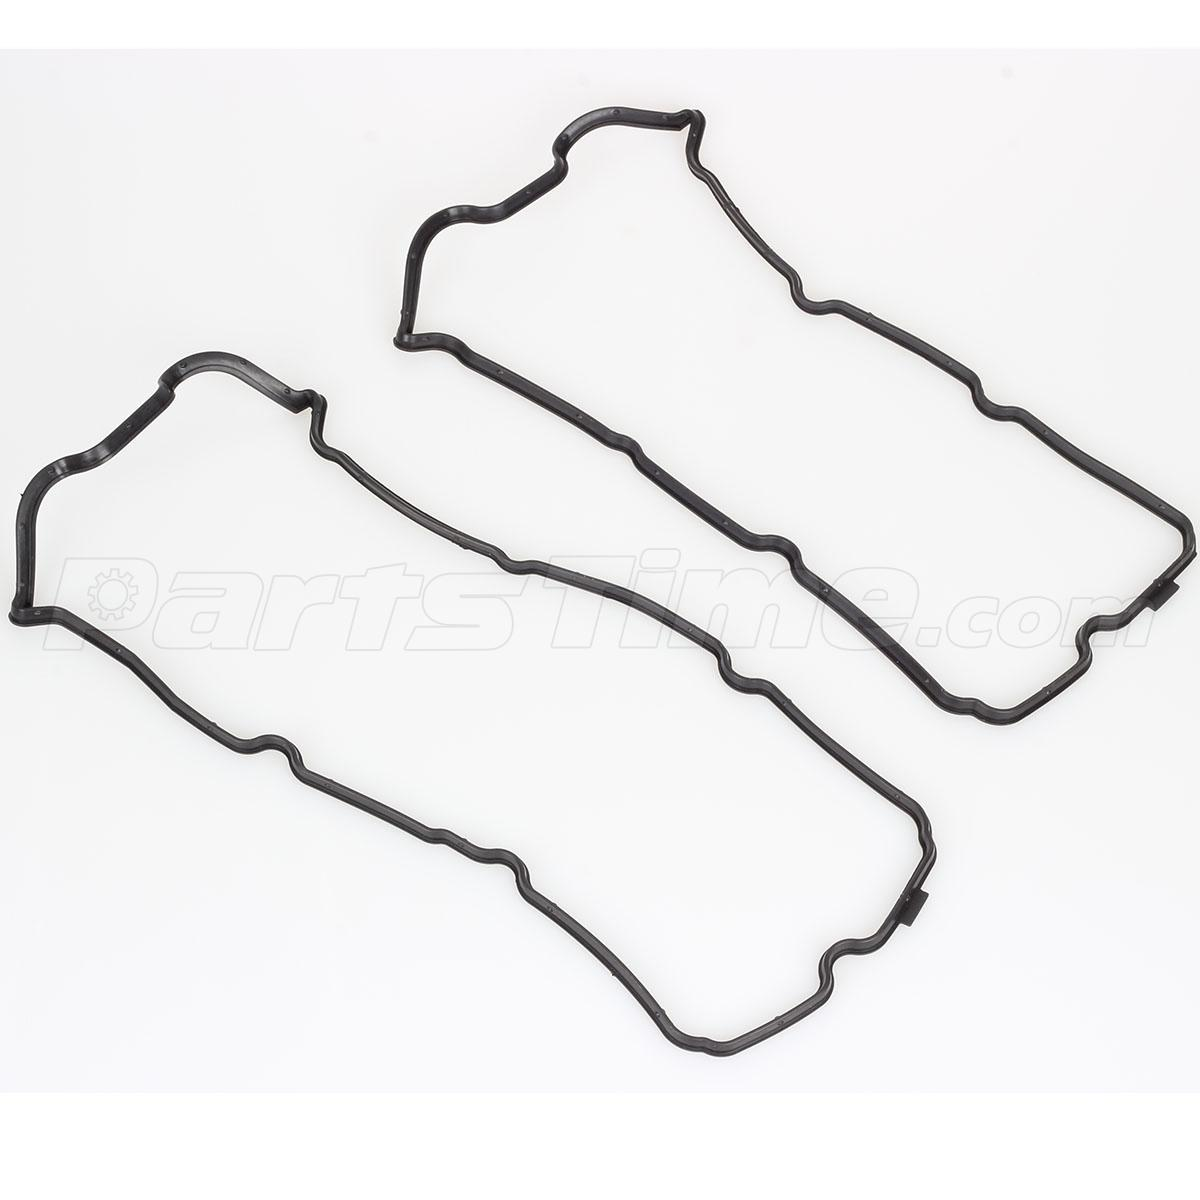 Cylinder Valve Cover Gaskets For 02 08 Infiniti Fx35 G35